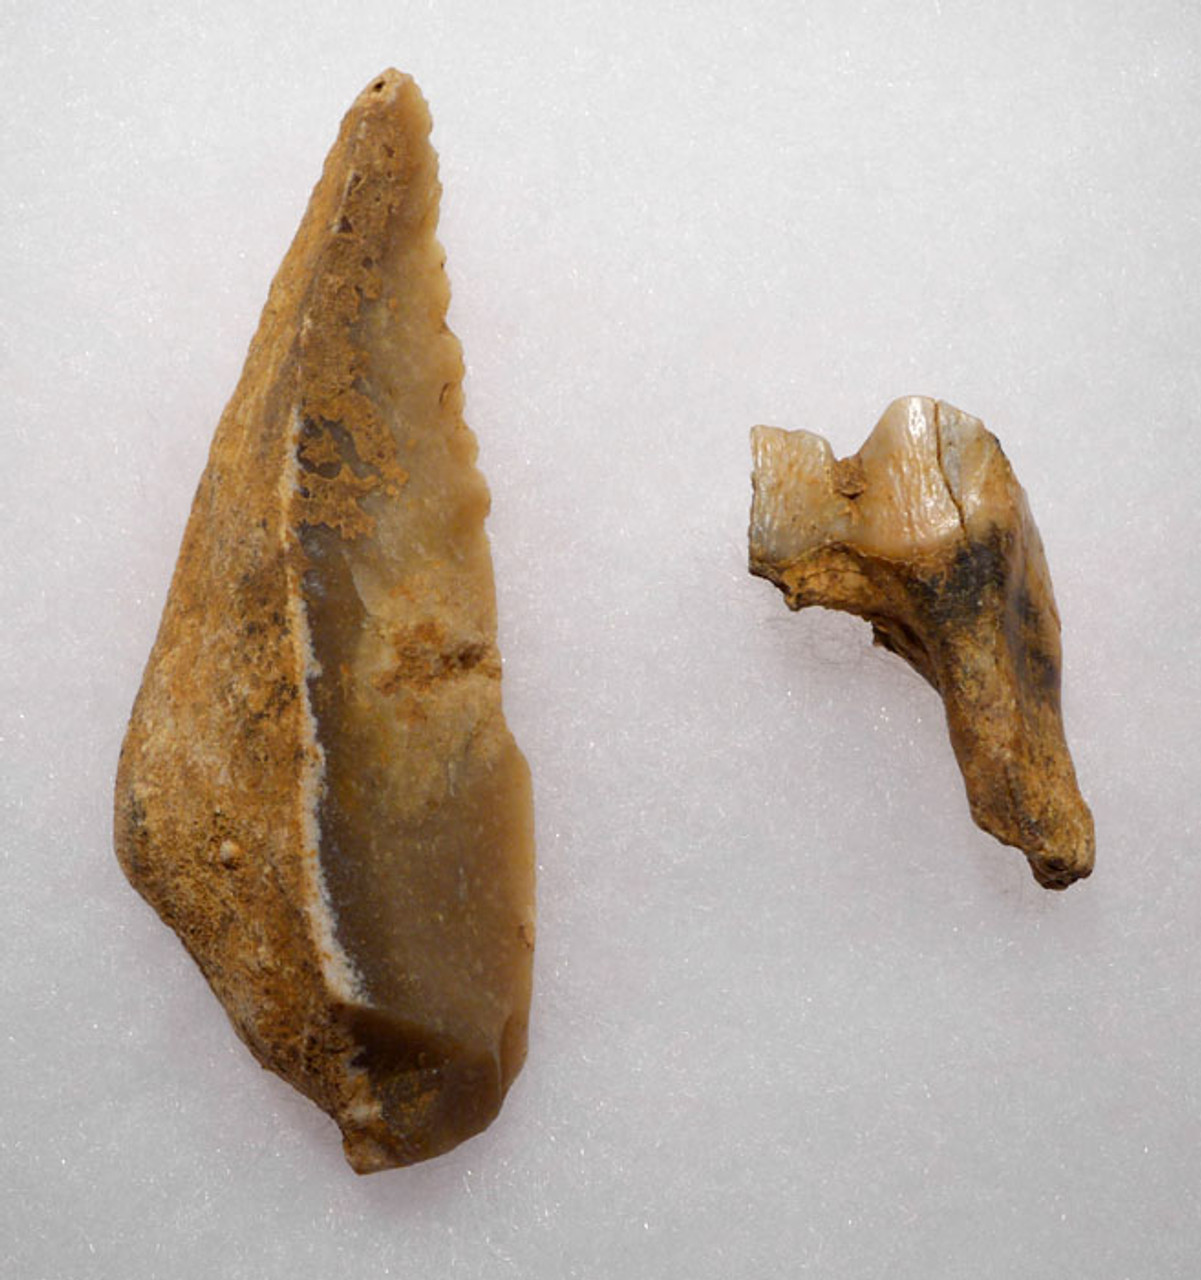 M342 - VERY RARE NEANDERTHAL MOUSTERIAN FLINT KNIFE FOUND WITH FOSSIL REINDEER TOOTH FROM A ROCK SHELTER IN FRANCE